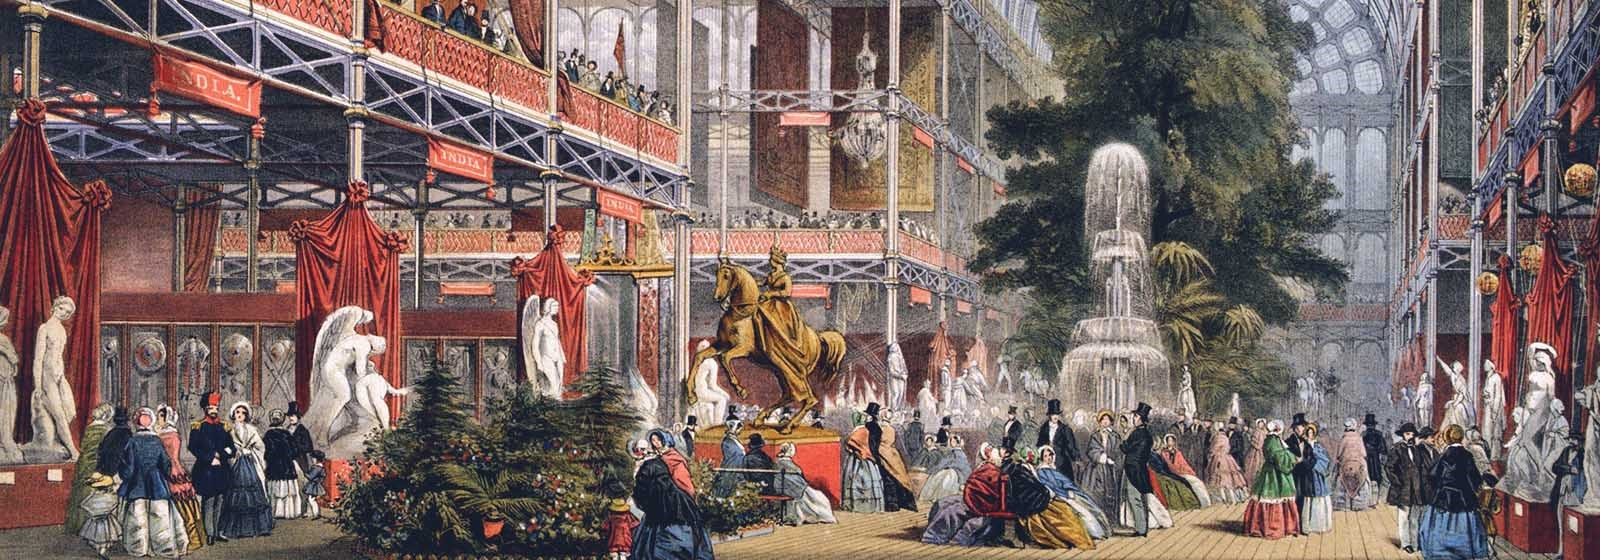 The Royal Exhibition 1851